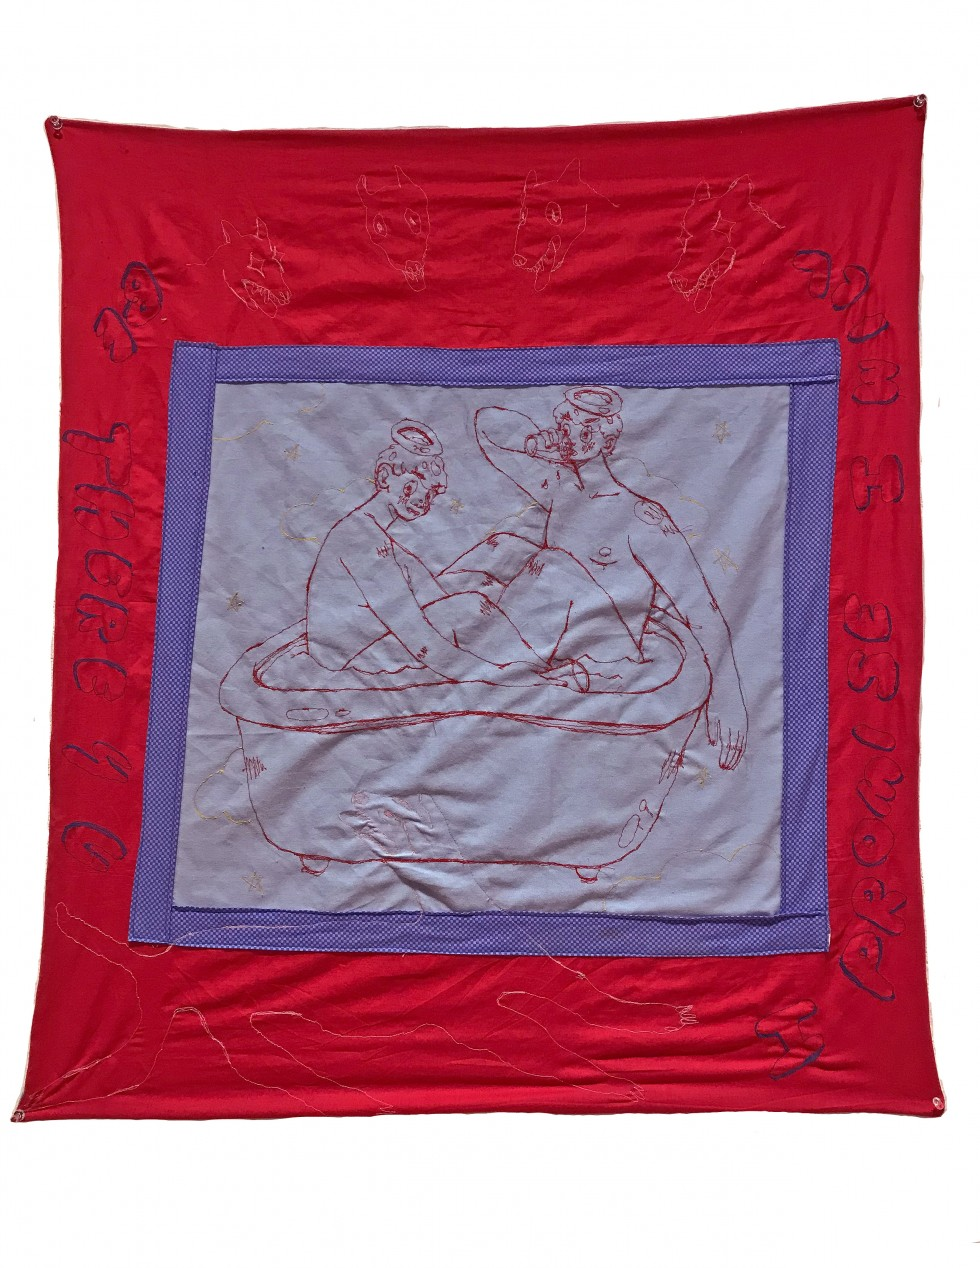 "A large rectangle of red fabric with a smaller square of blue fabric at the center. In the middle of the blue square is an embroidered image of two boys sitting in a bathtub. Surrounding them are five dogs and the words ""I promise I will be there 4 u."""